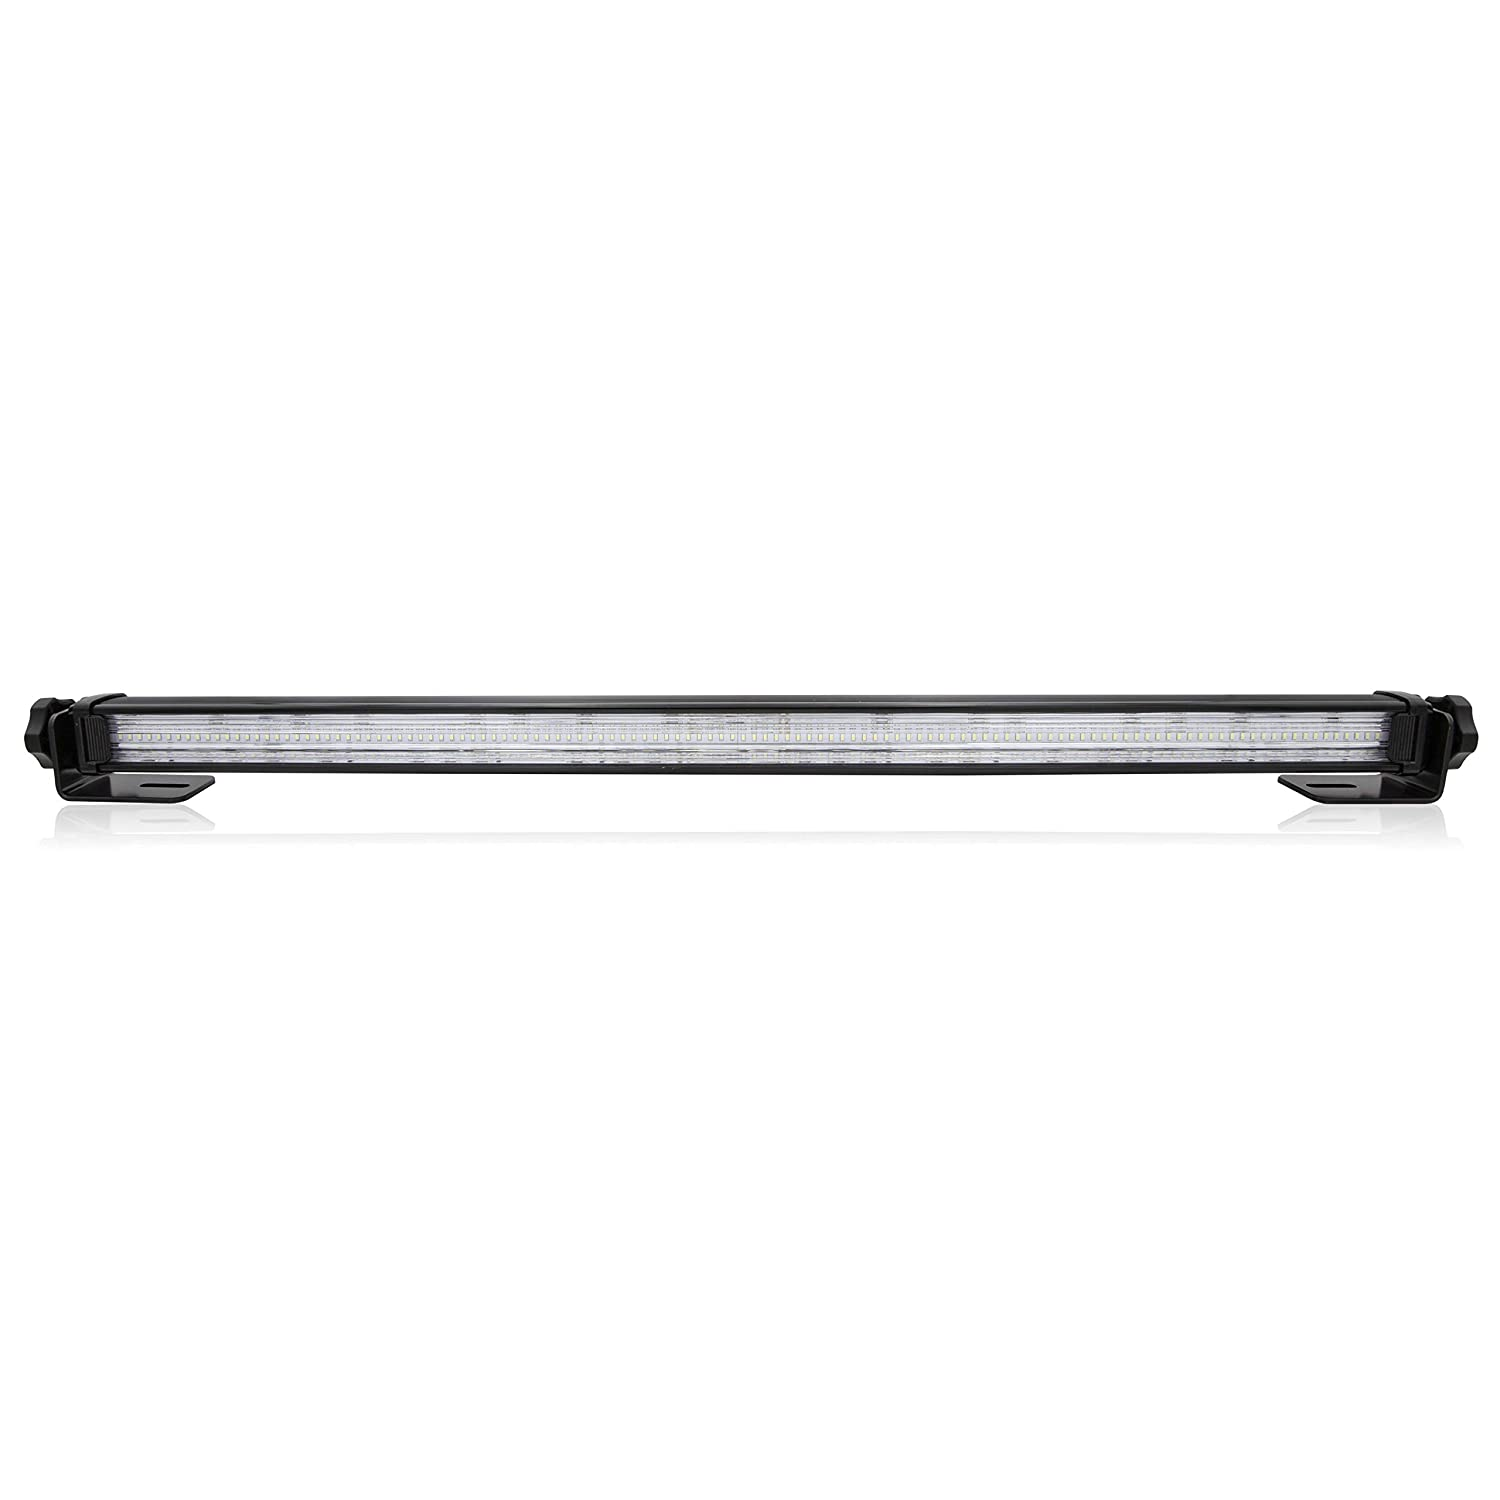 Maxxima MWBL-1-A 3,000 Lumen LED Work Bar Light